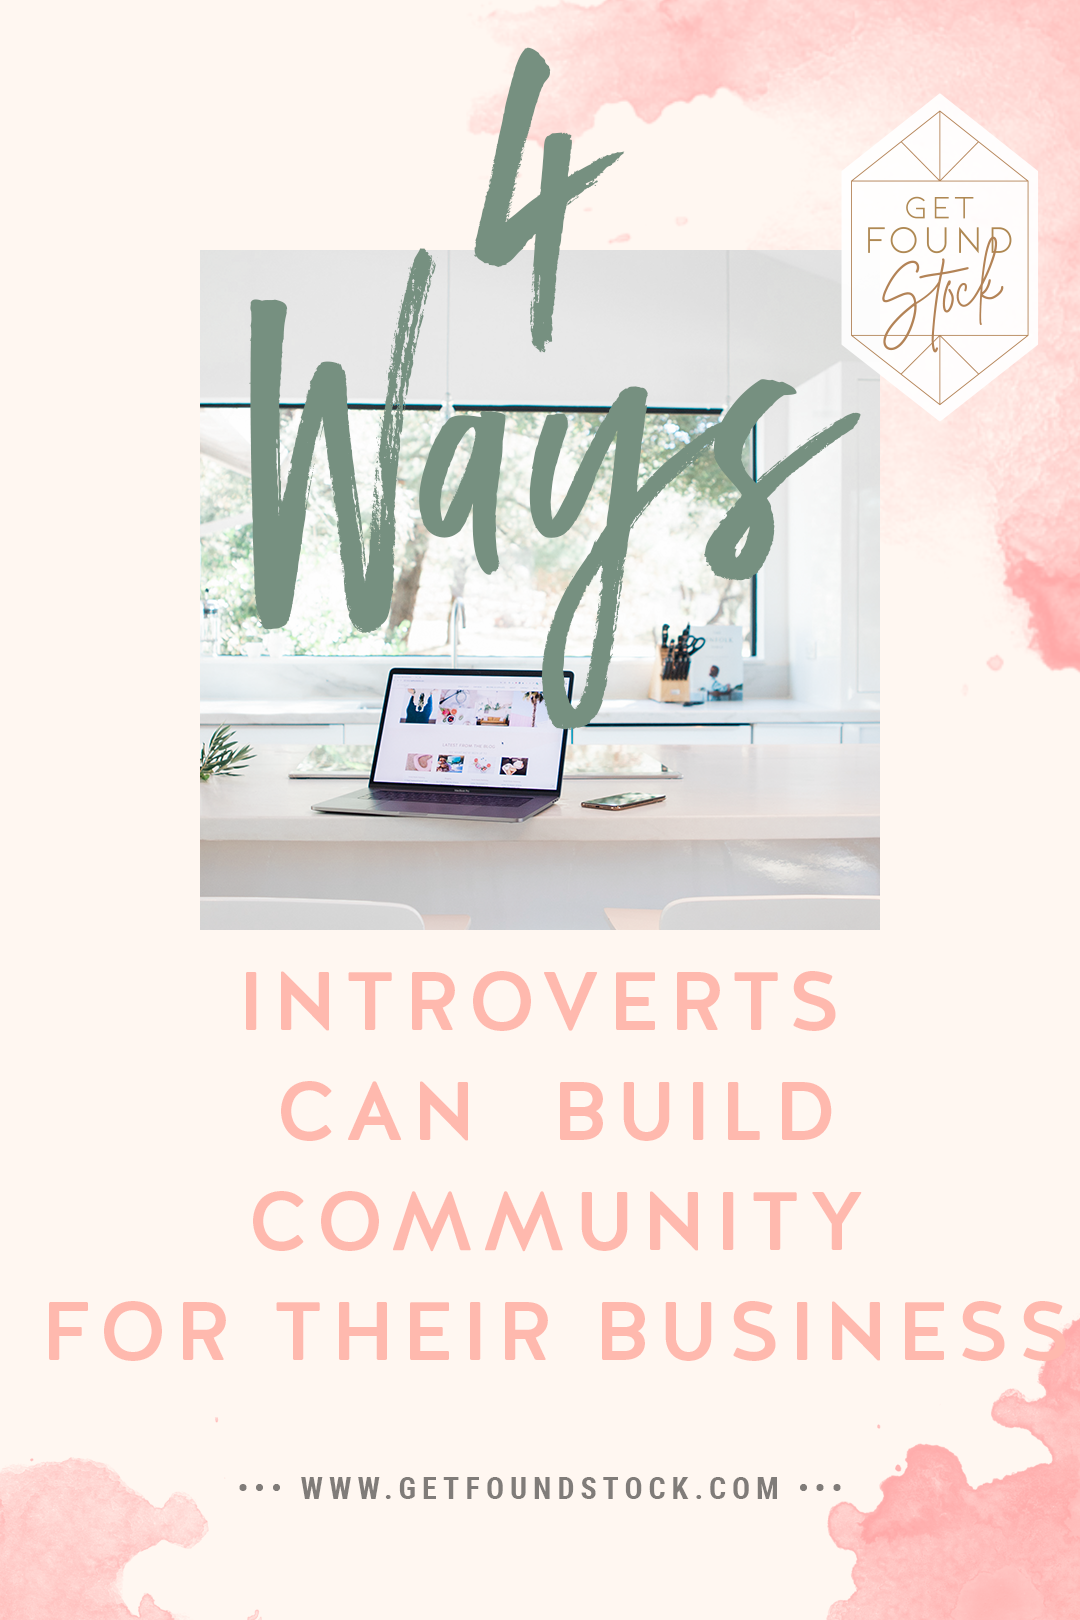 Let's cut the small talk and get to the best part: making long-lasting connections with creative entrepreneurs! Check out our introvert entrepreneur-friendly guide on building an offline and online community. #introverts #girlboss #communityovercompetition